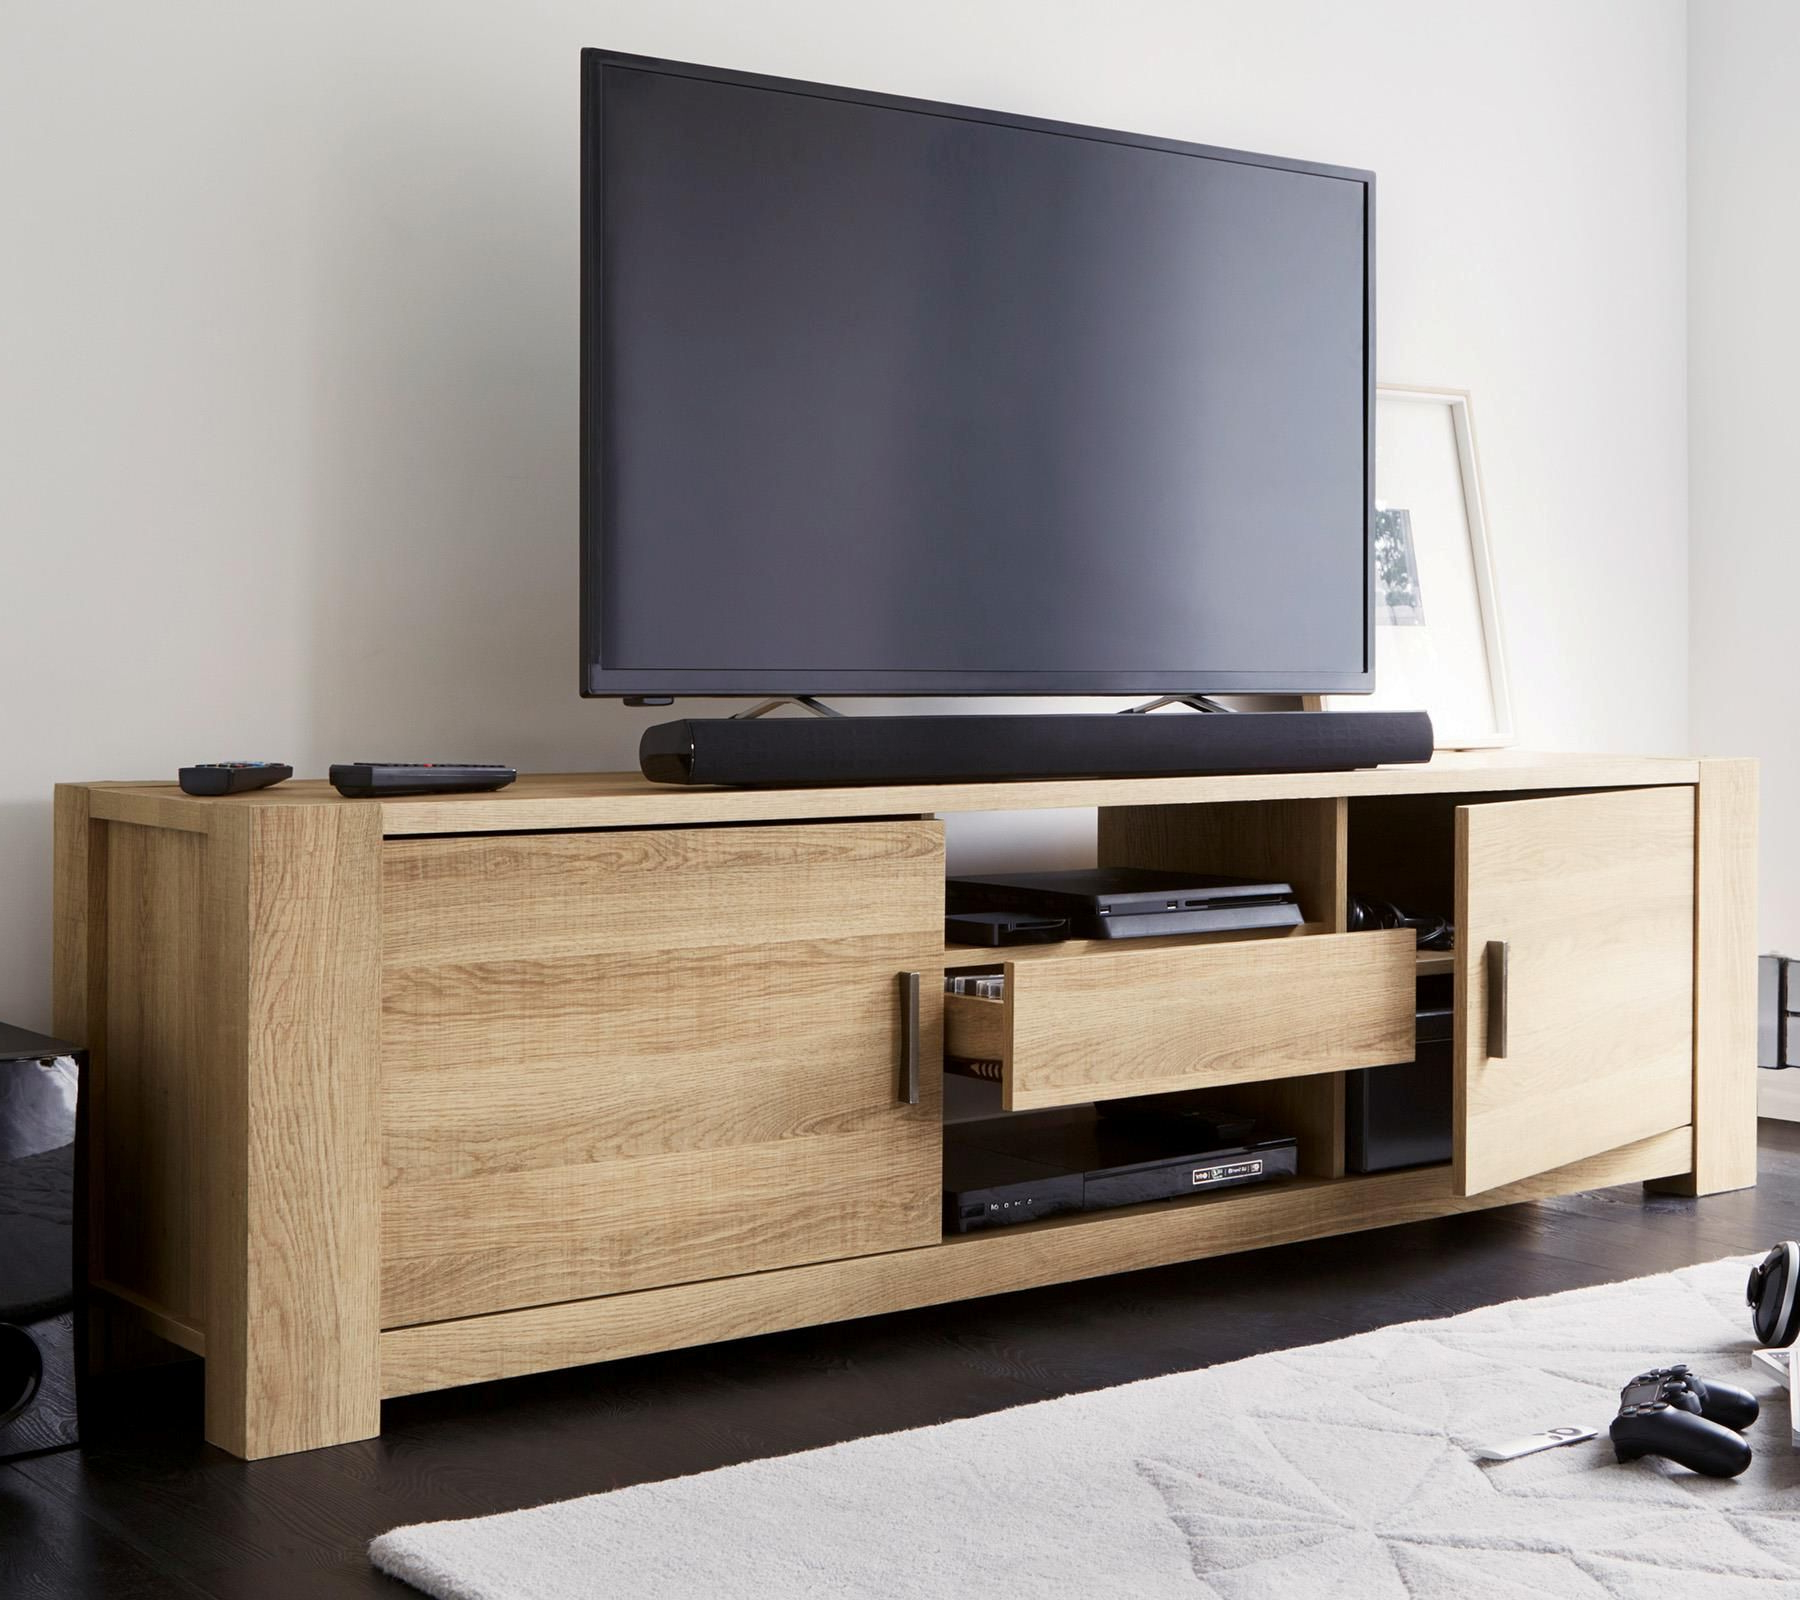 Flat Within Most Recently Released Widescreen Tv Cabinets (View 6 of 20)